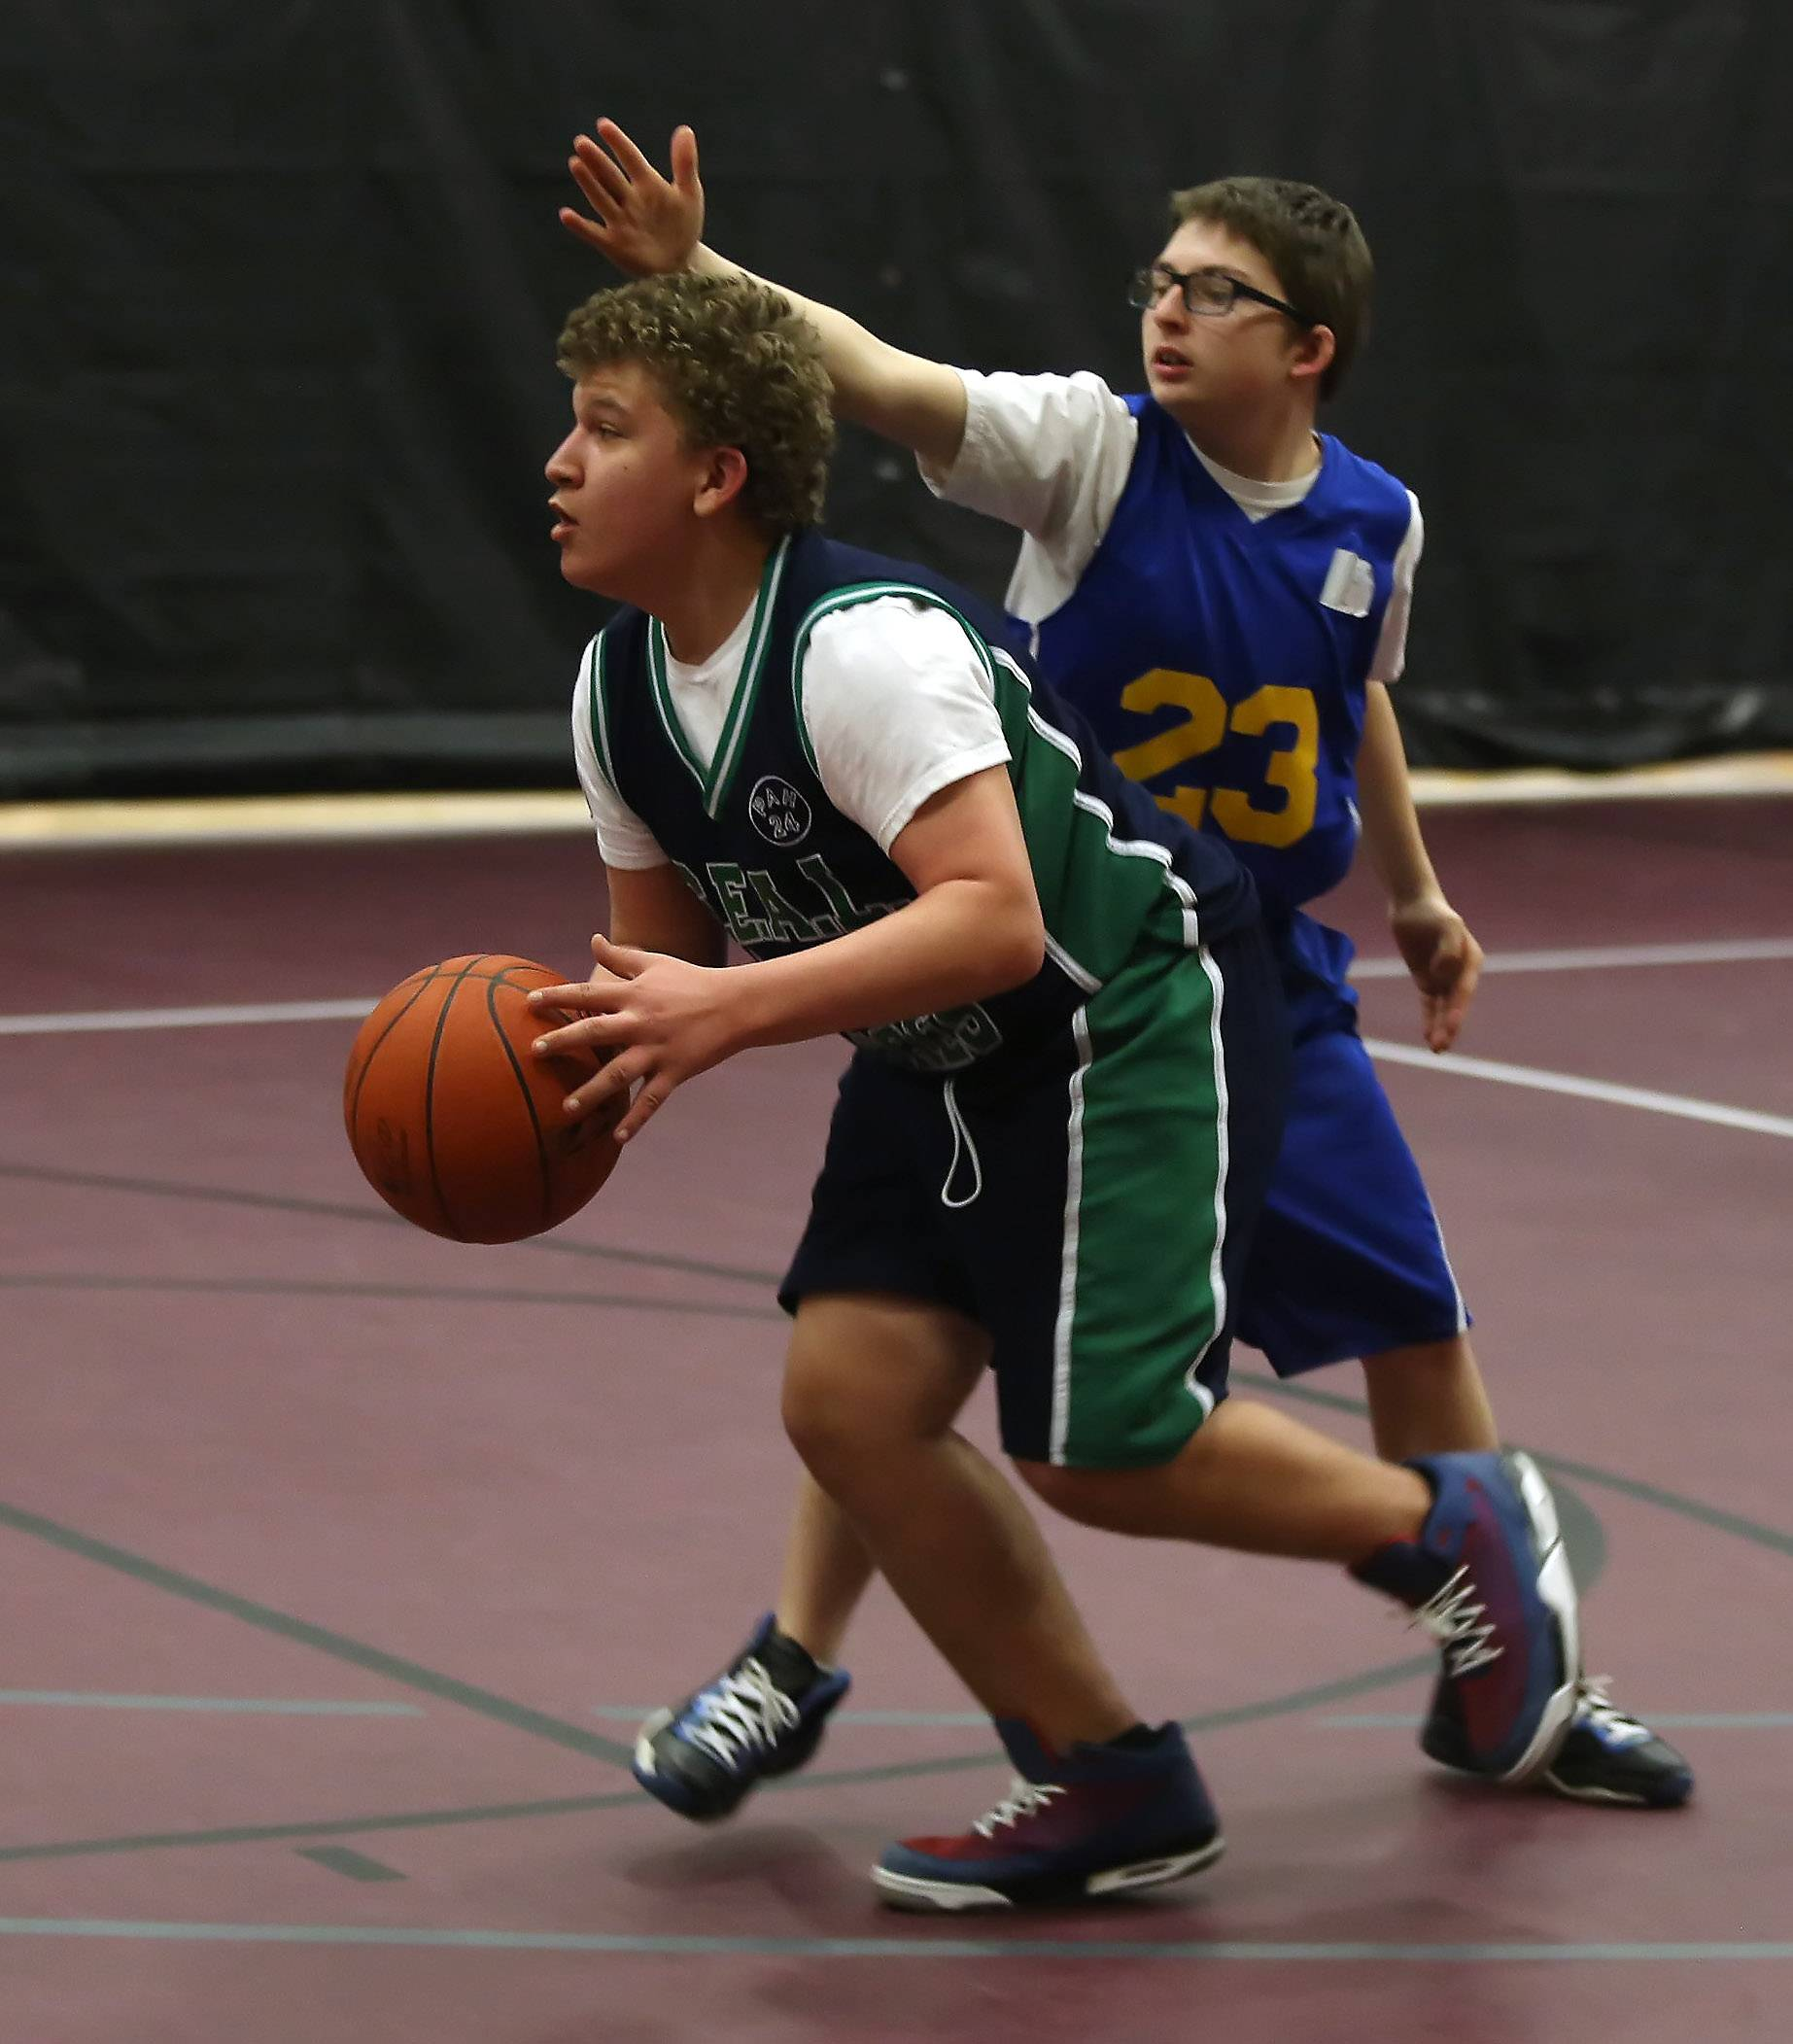 SEAL North school player Bob Vitello of Lombard dribbles past Cove School player Jackson Kozeny of Northbrook during Sunday's Chicago Area Alternative Education League basketball tournament in Arlington Heights.